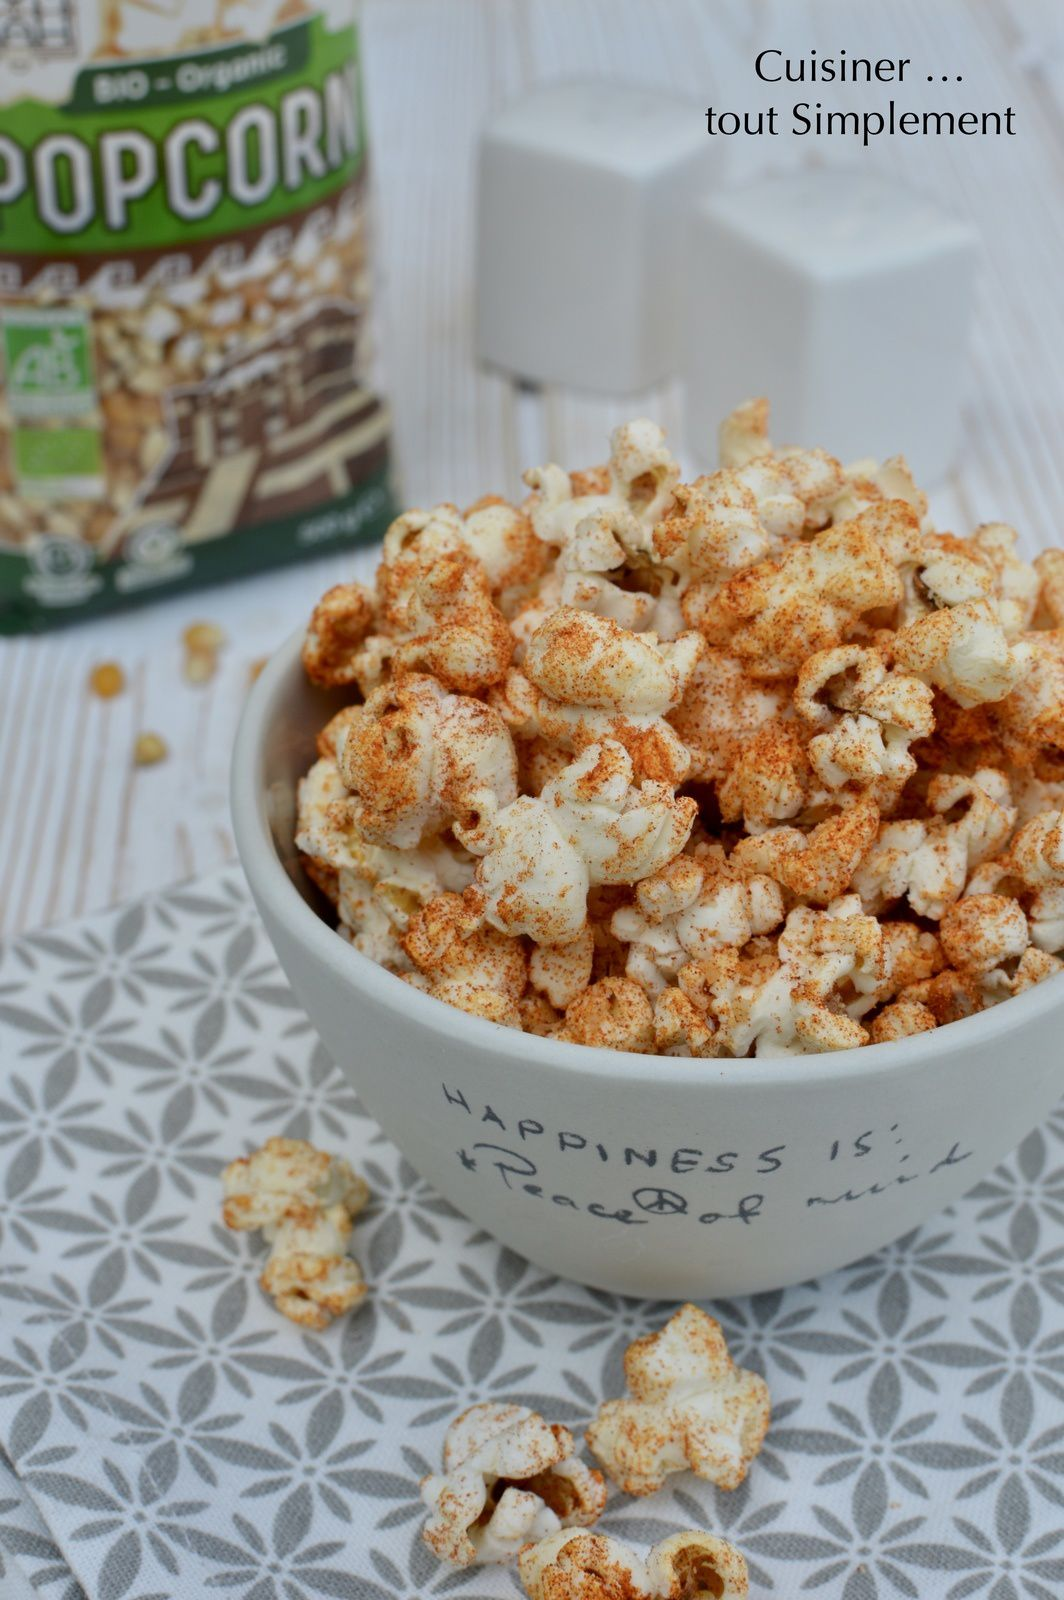 Pop Corn BIO YUM KAH